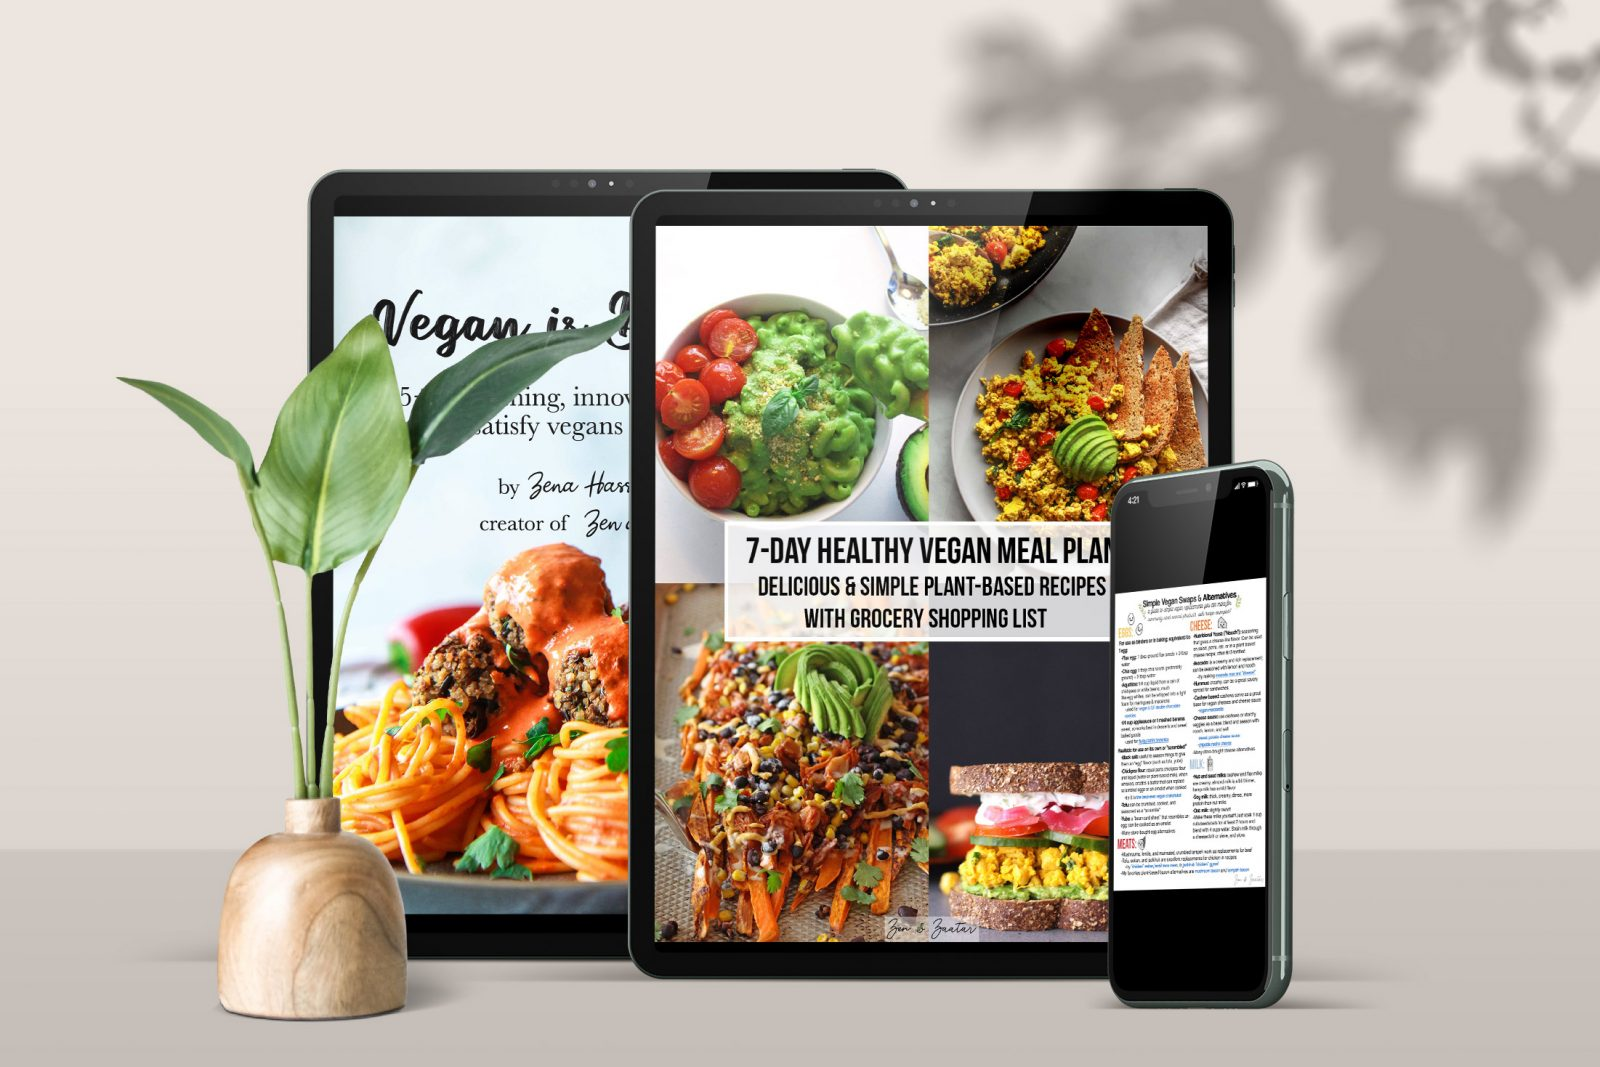 Get Vegan is Delicious, the 7-day Healthy Vegan Meal Plan, and the Vegan Substitutions Guide for only 14.99.